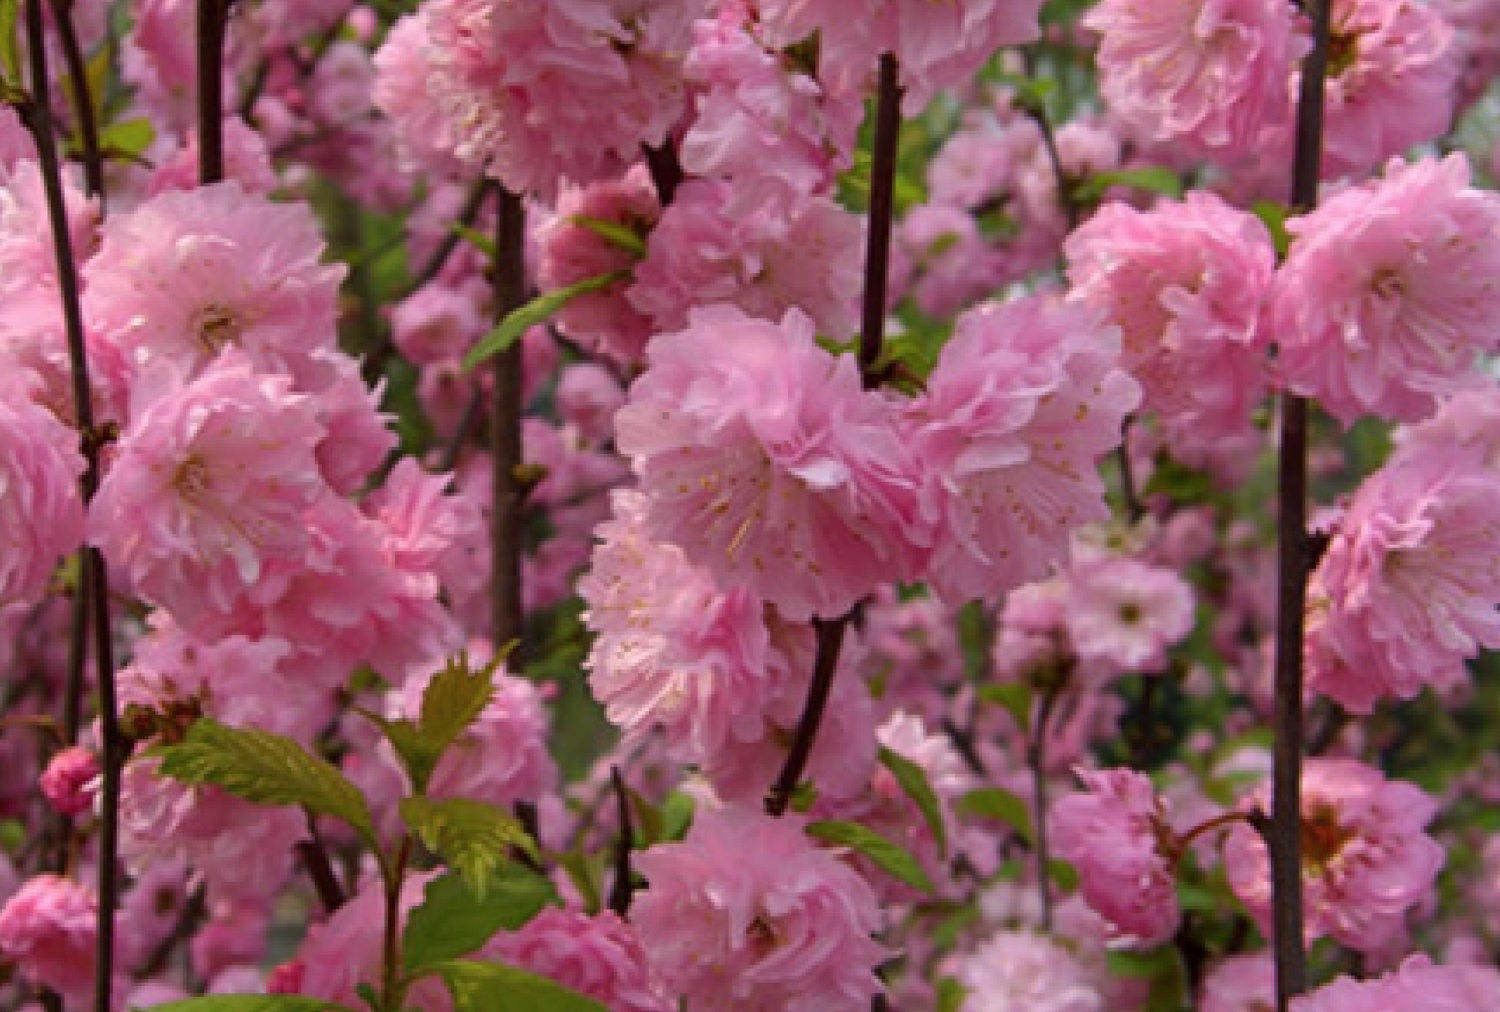 1 Shrubs Double Pink Flowering Almond 2 Foot Tall Potted And It Is